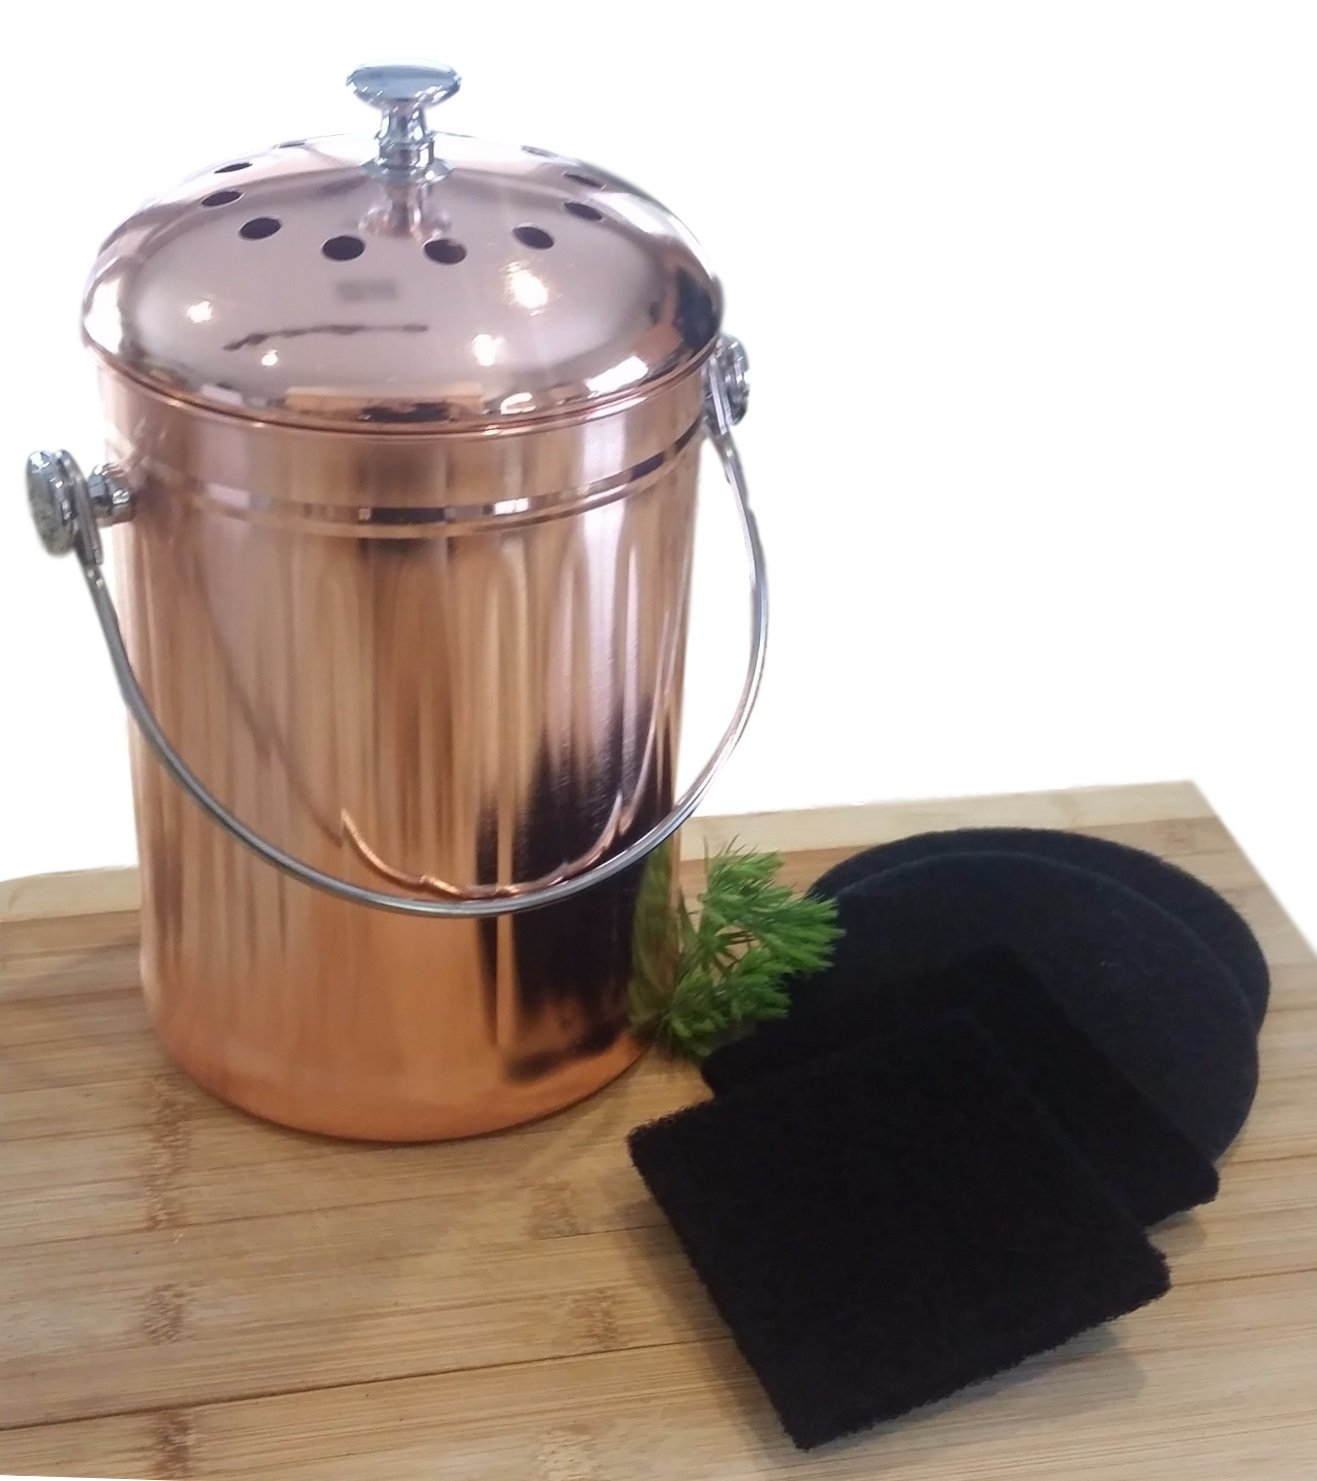 Copper Countertop Compost Bin Crock Bucket for Indoor Kitchen Use - Copper Coated Stainless Steel Pail 1 Gallon - BONUS Includes 2 Sets of DUAL Charcoal Filters by Goldsol Brands